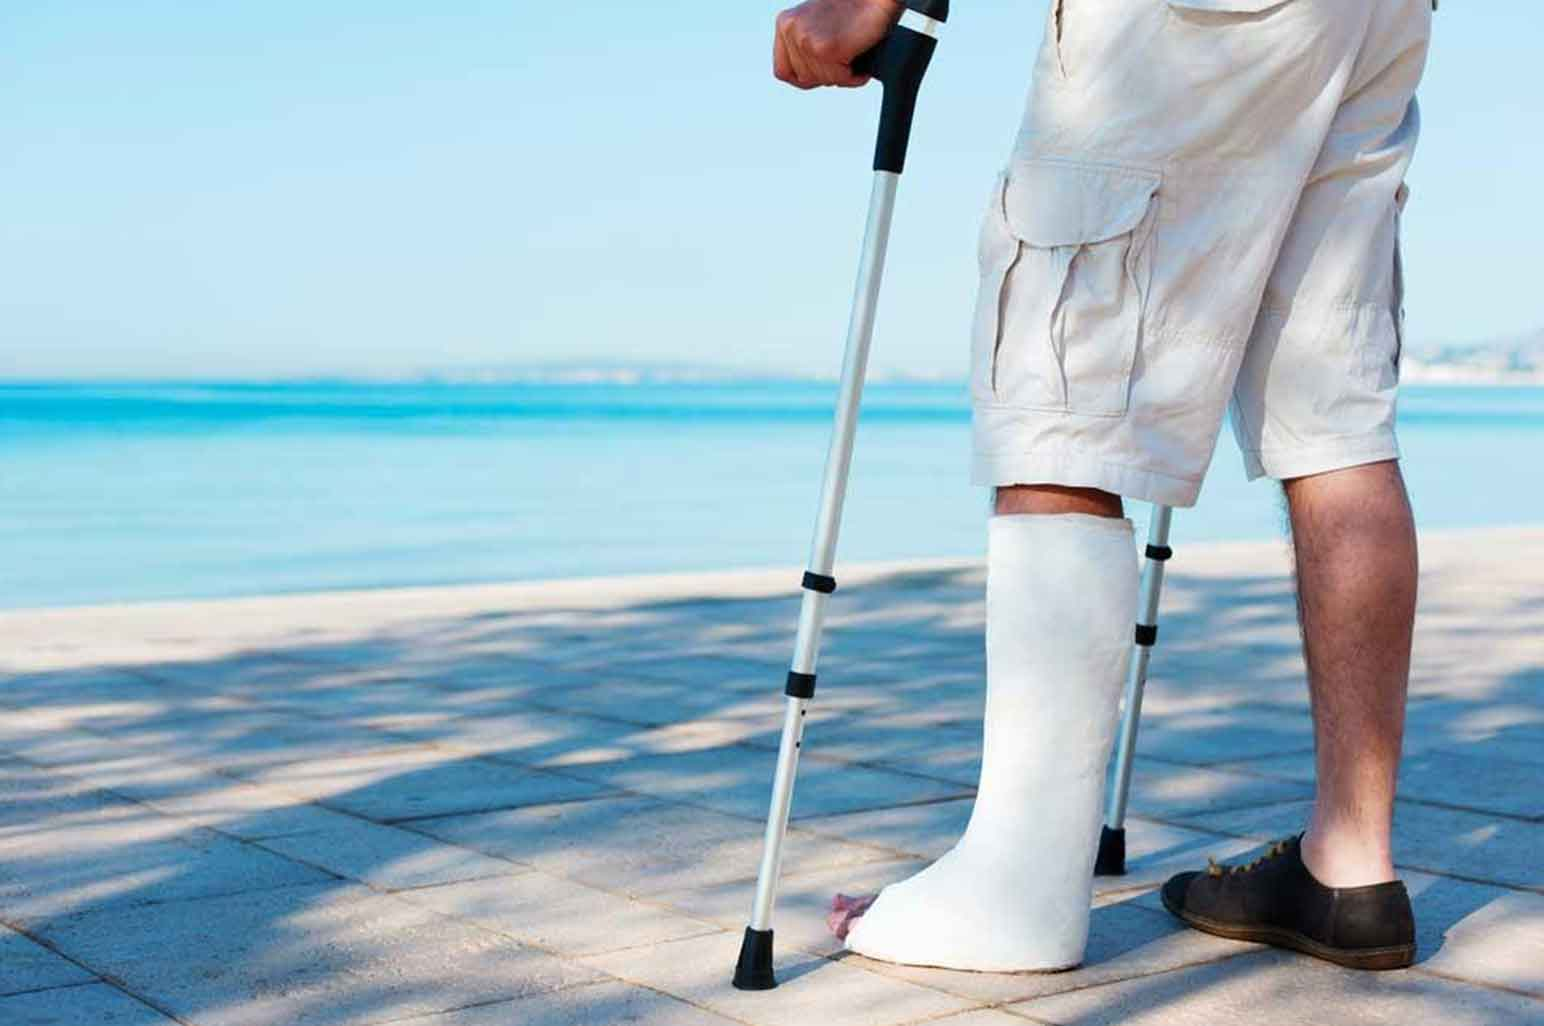 Travel Activities People with Injuries Can Do During a Vacation